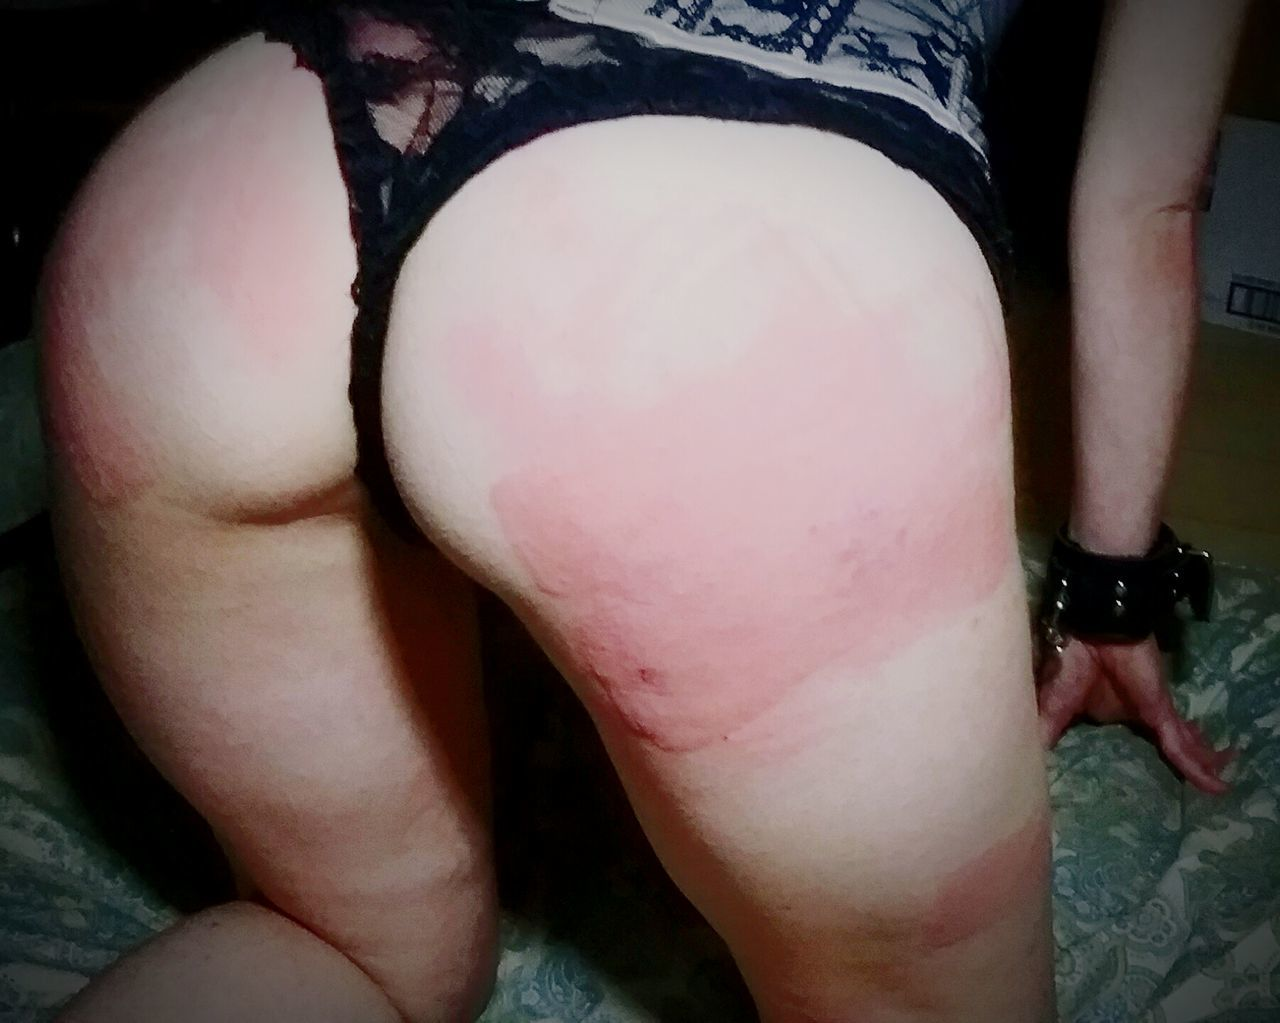 Adults Only Bondage. Bdsmlifestyle Adult Crop Whip Spanking Sexygirl